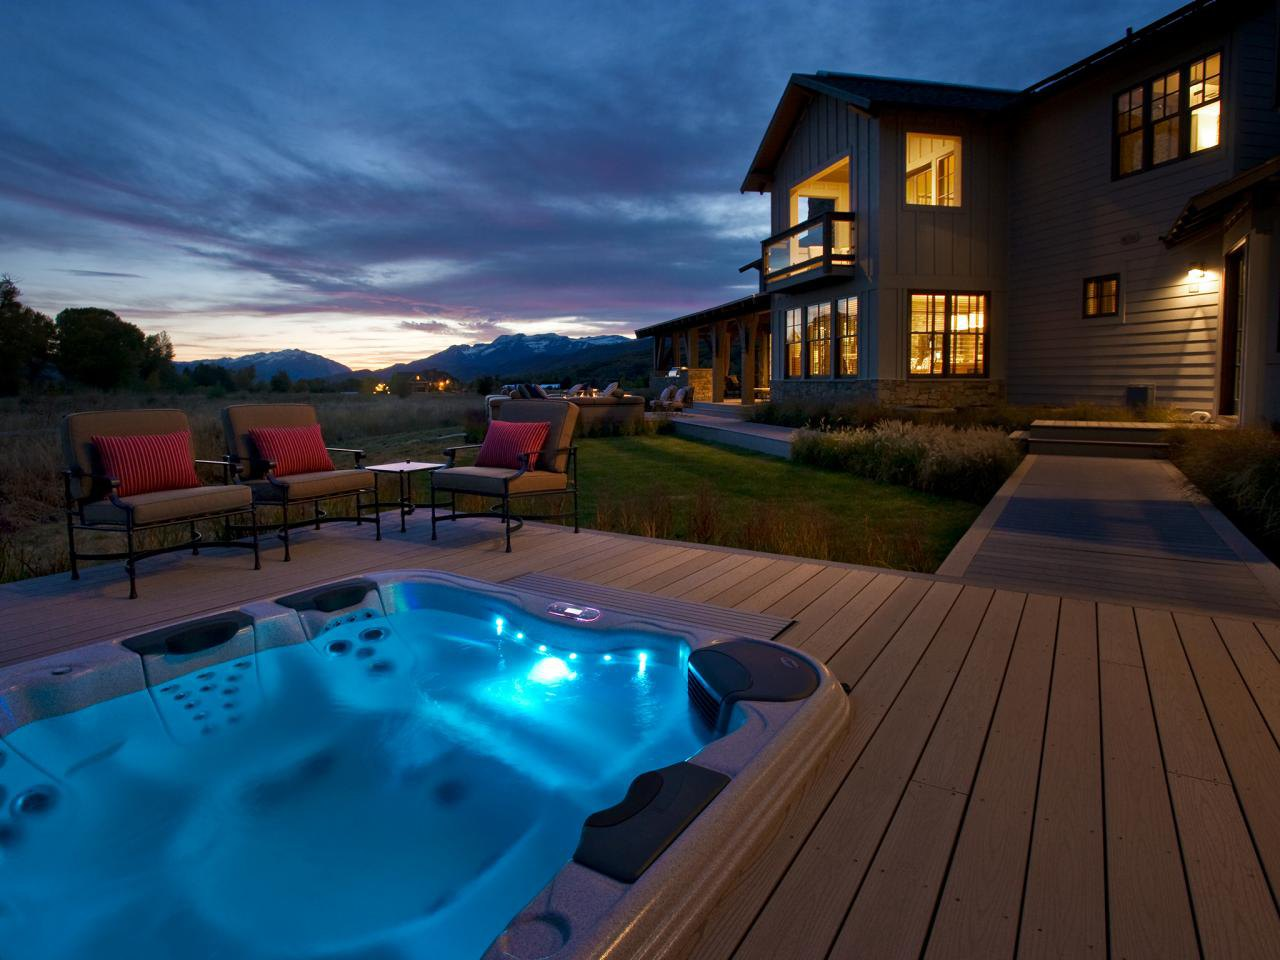 50 Gorgeous Decks and Patios With Hot Tubs - Interior ... on Deck And Hot Tub Ideas  id=49120